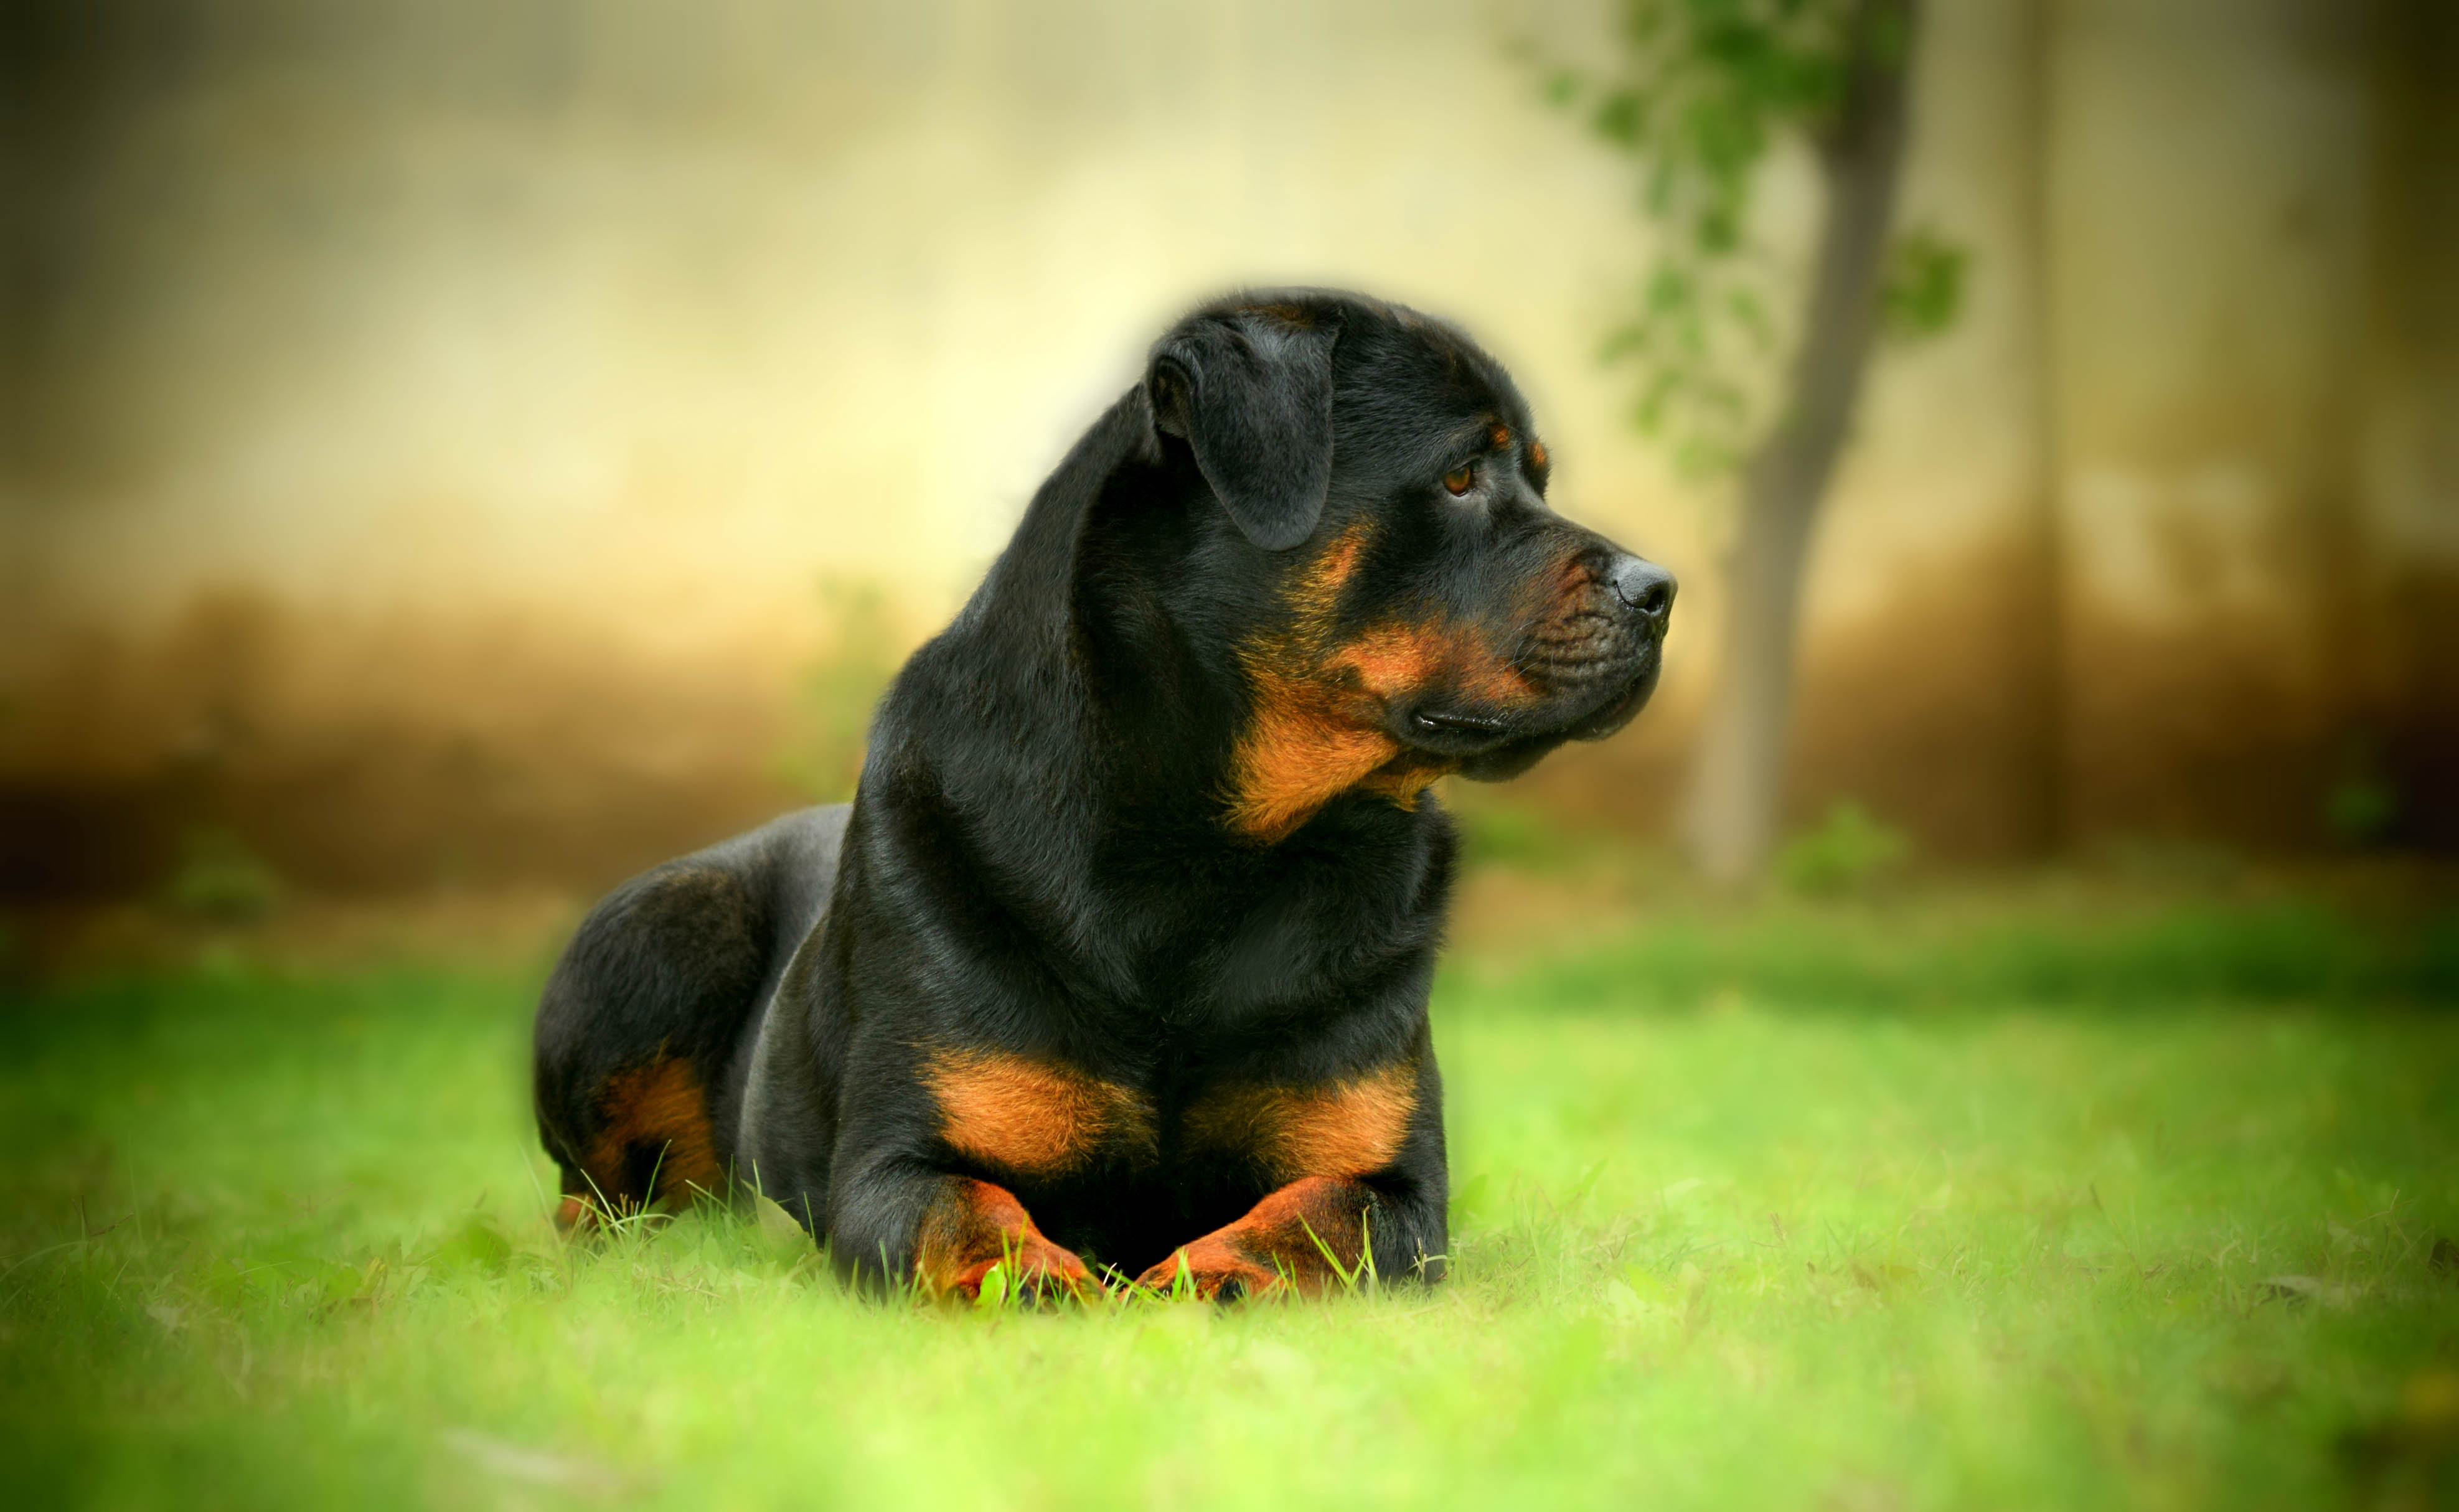 Rottweiler Awesome Hd Wallpapers Backgrounds In High Resolution